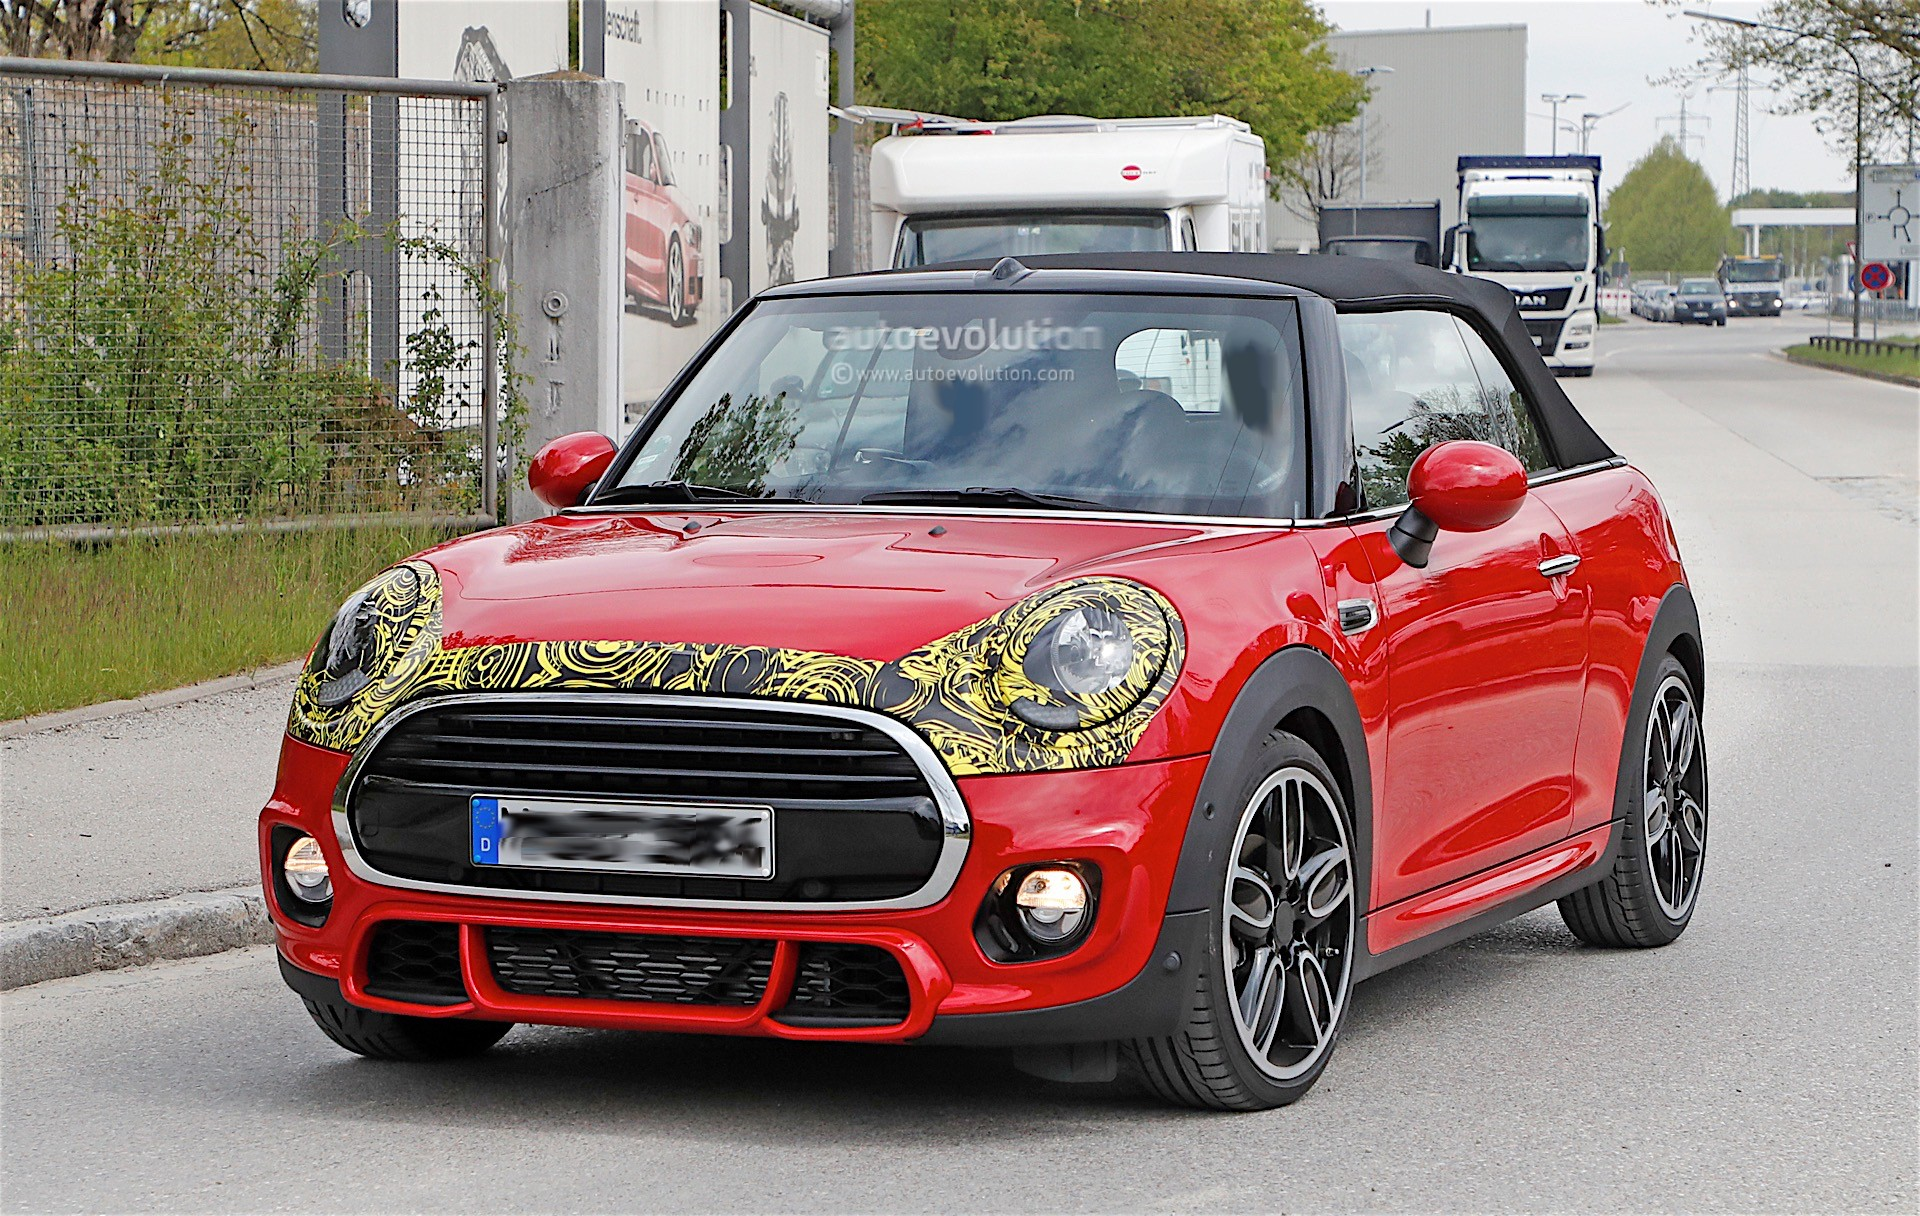 2018 mini cabrio and cooper s facelift spied in germany autoevolution. Black Bedroom Furniture Sets. Home Design Ideas